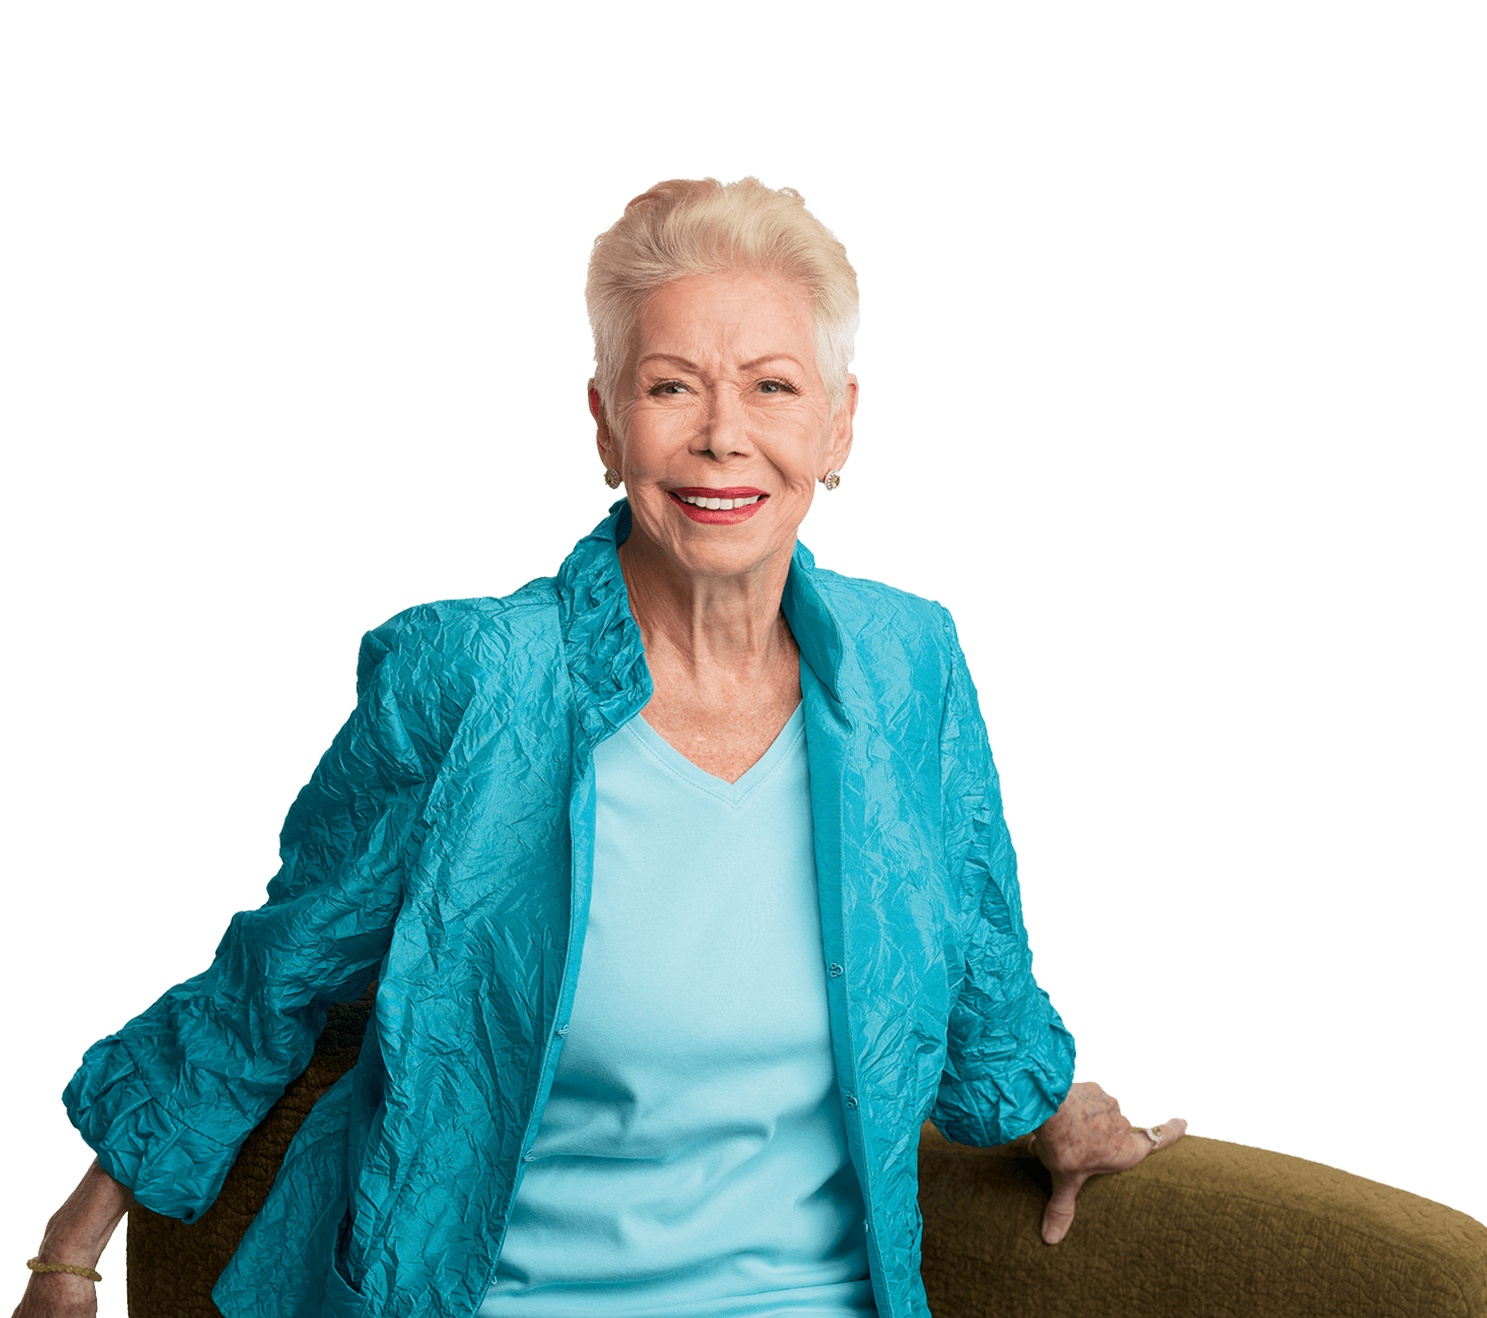 Heal Your Life Sessions, as taught by Louise Hay